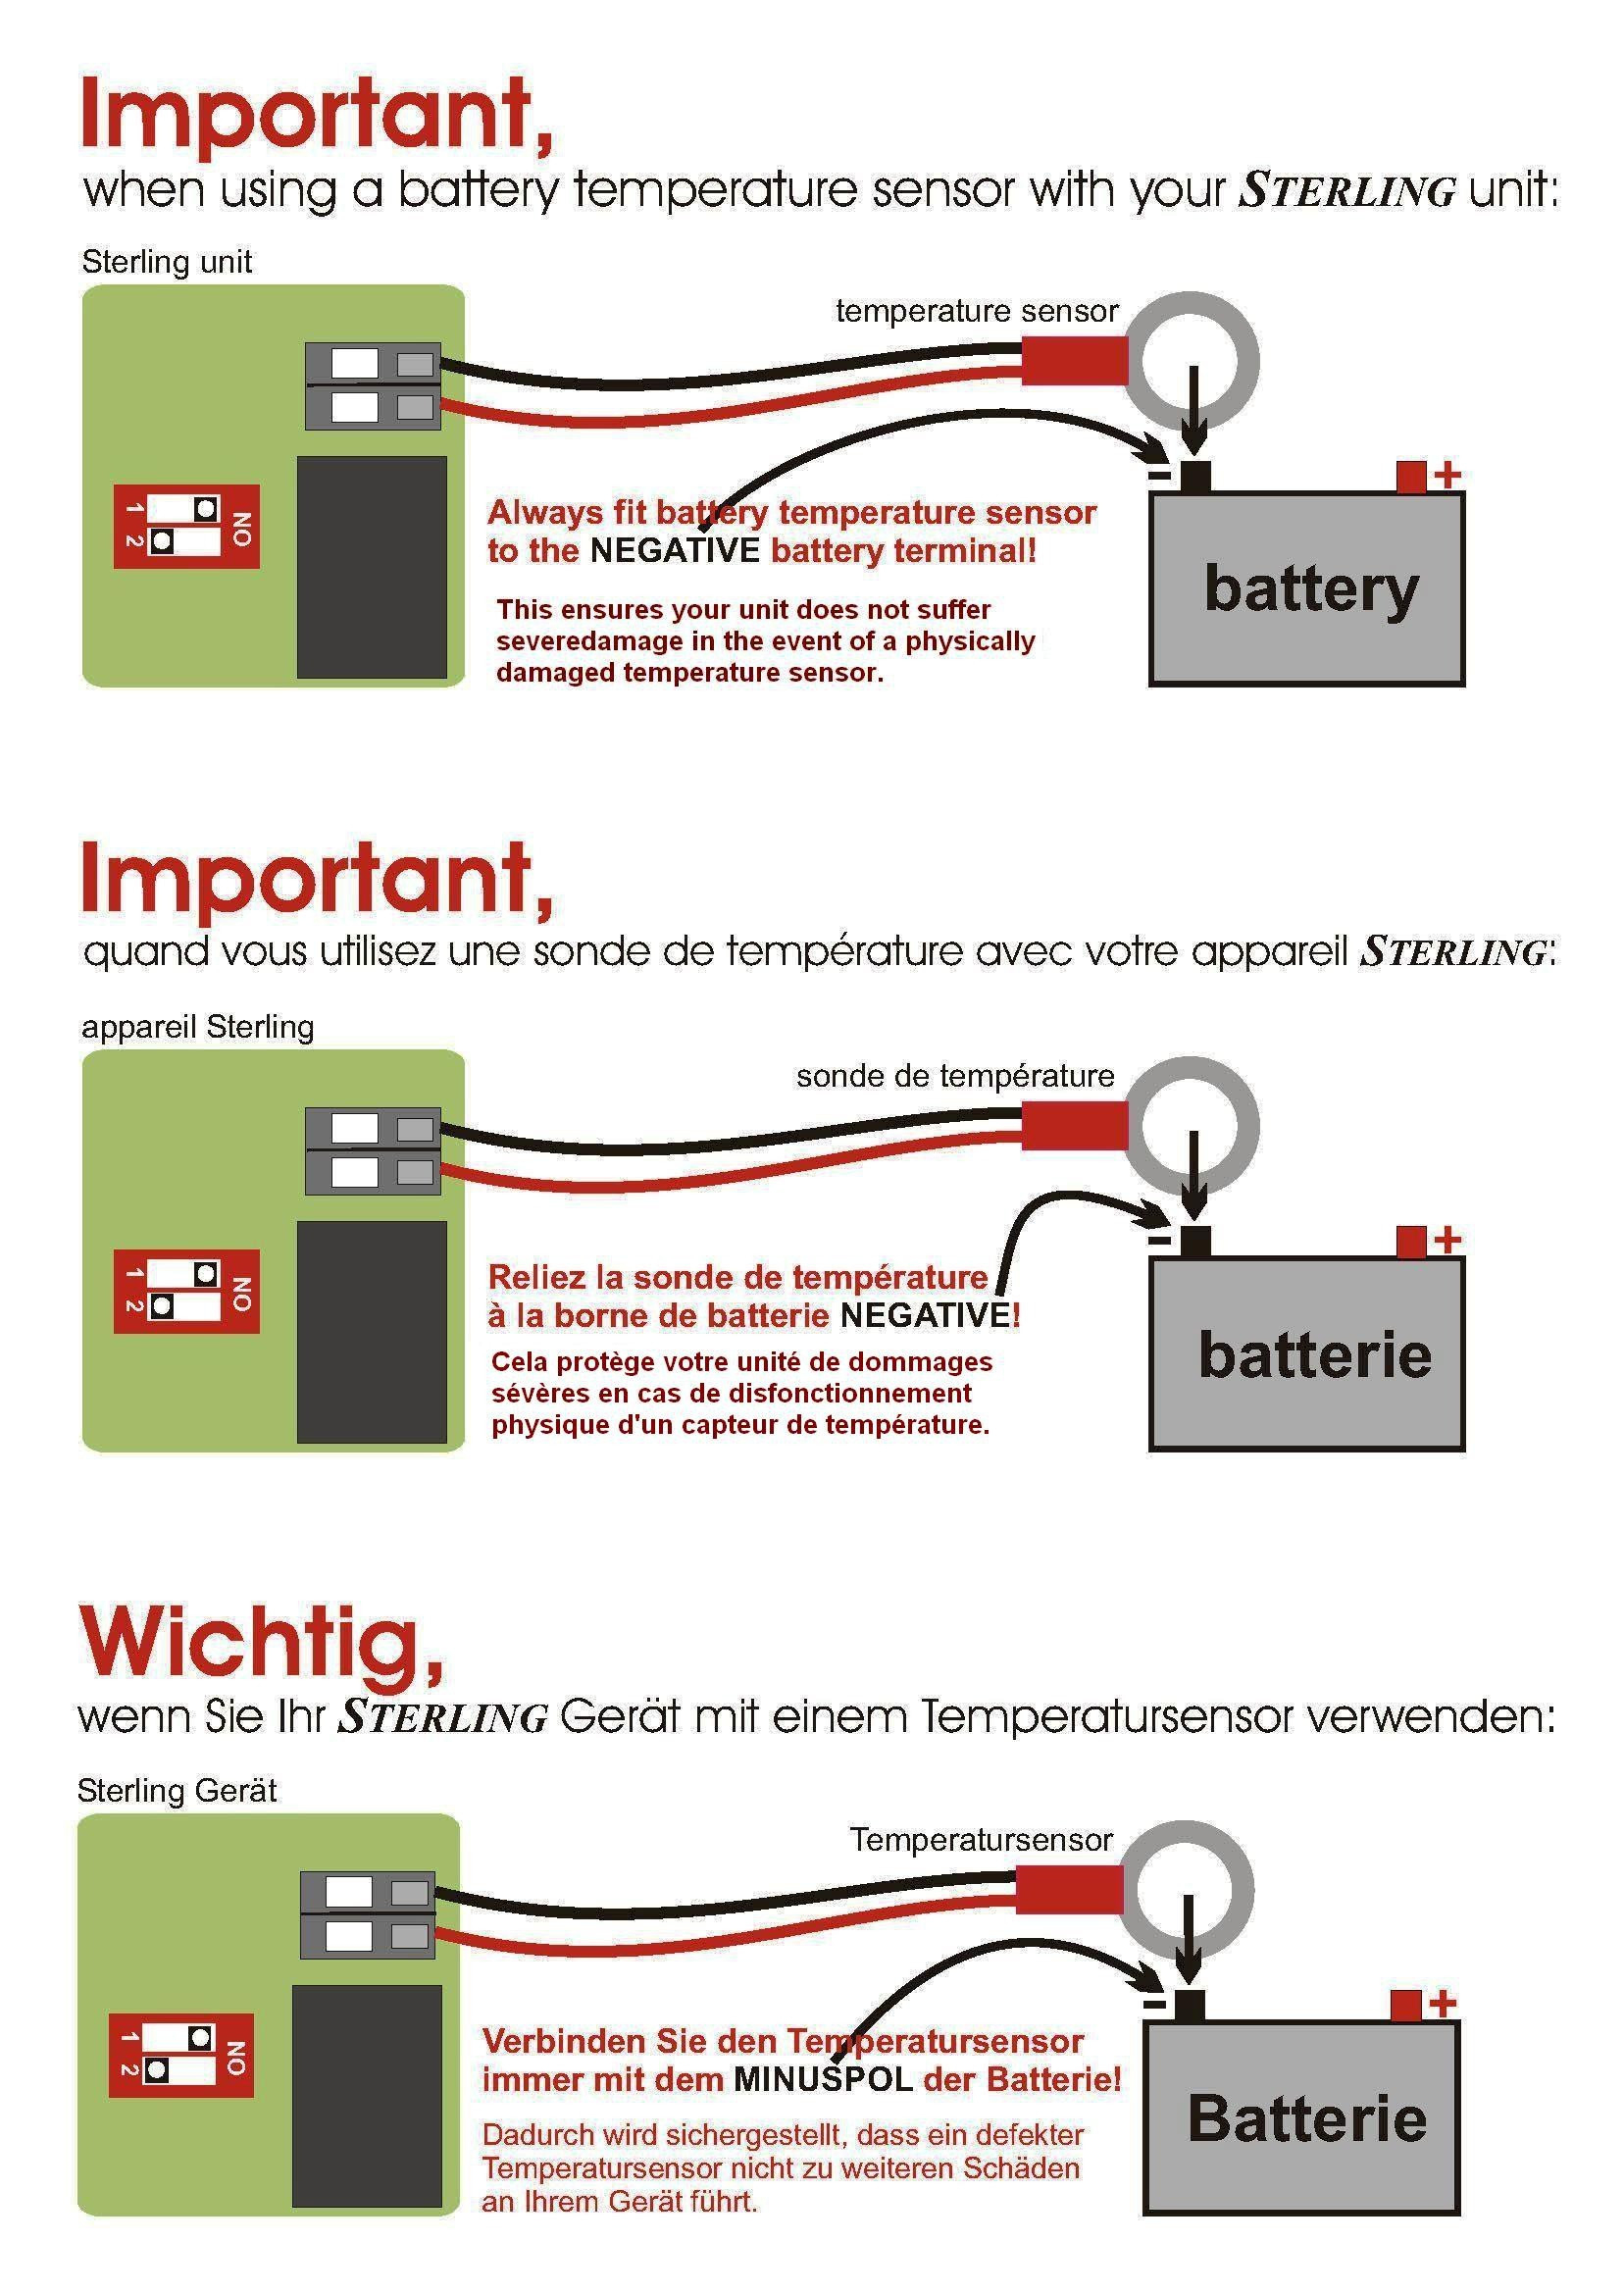 Rv Battery Disconnect Switch Wiring Diagram Fresh Rv Battery - Rv Battery Disconnect Switch Wiring Diagram